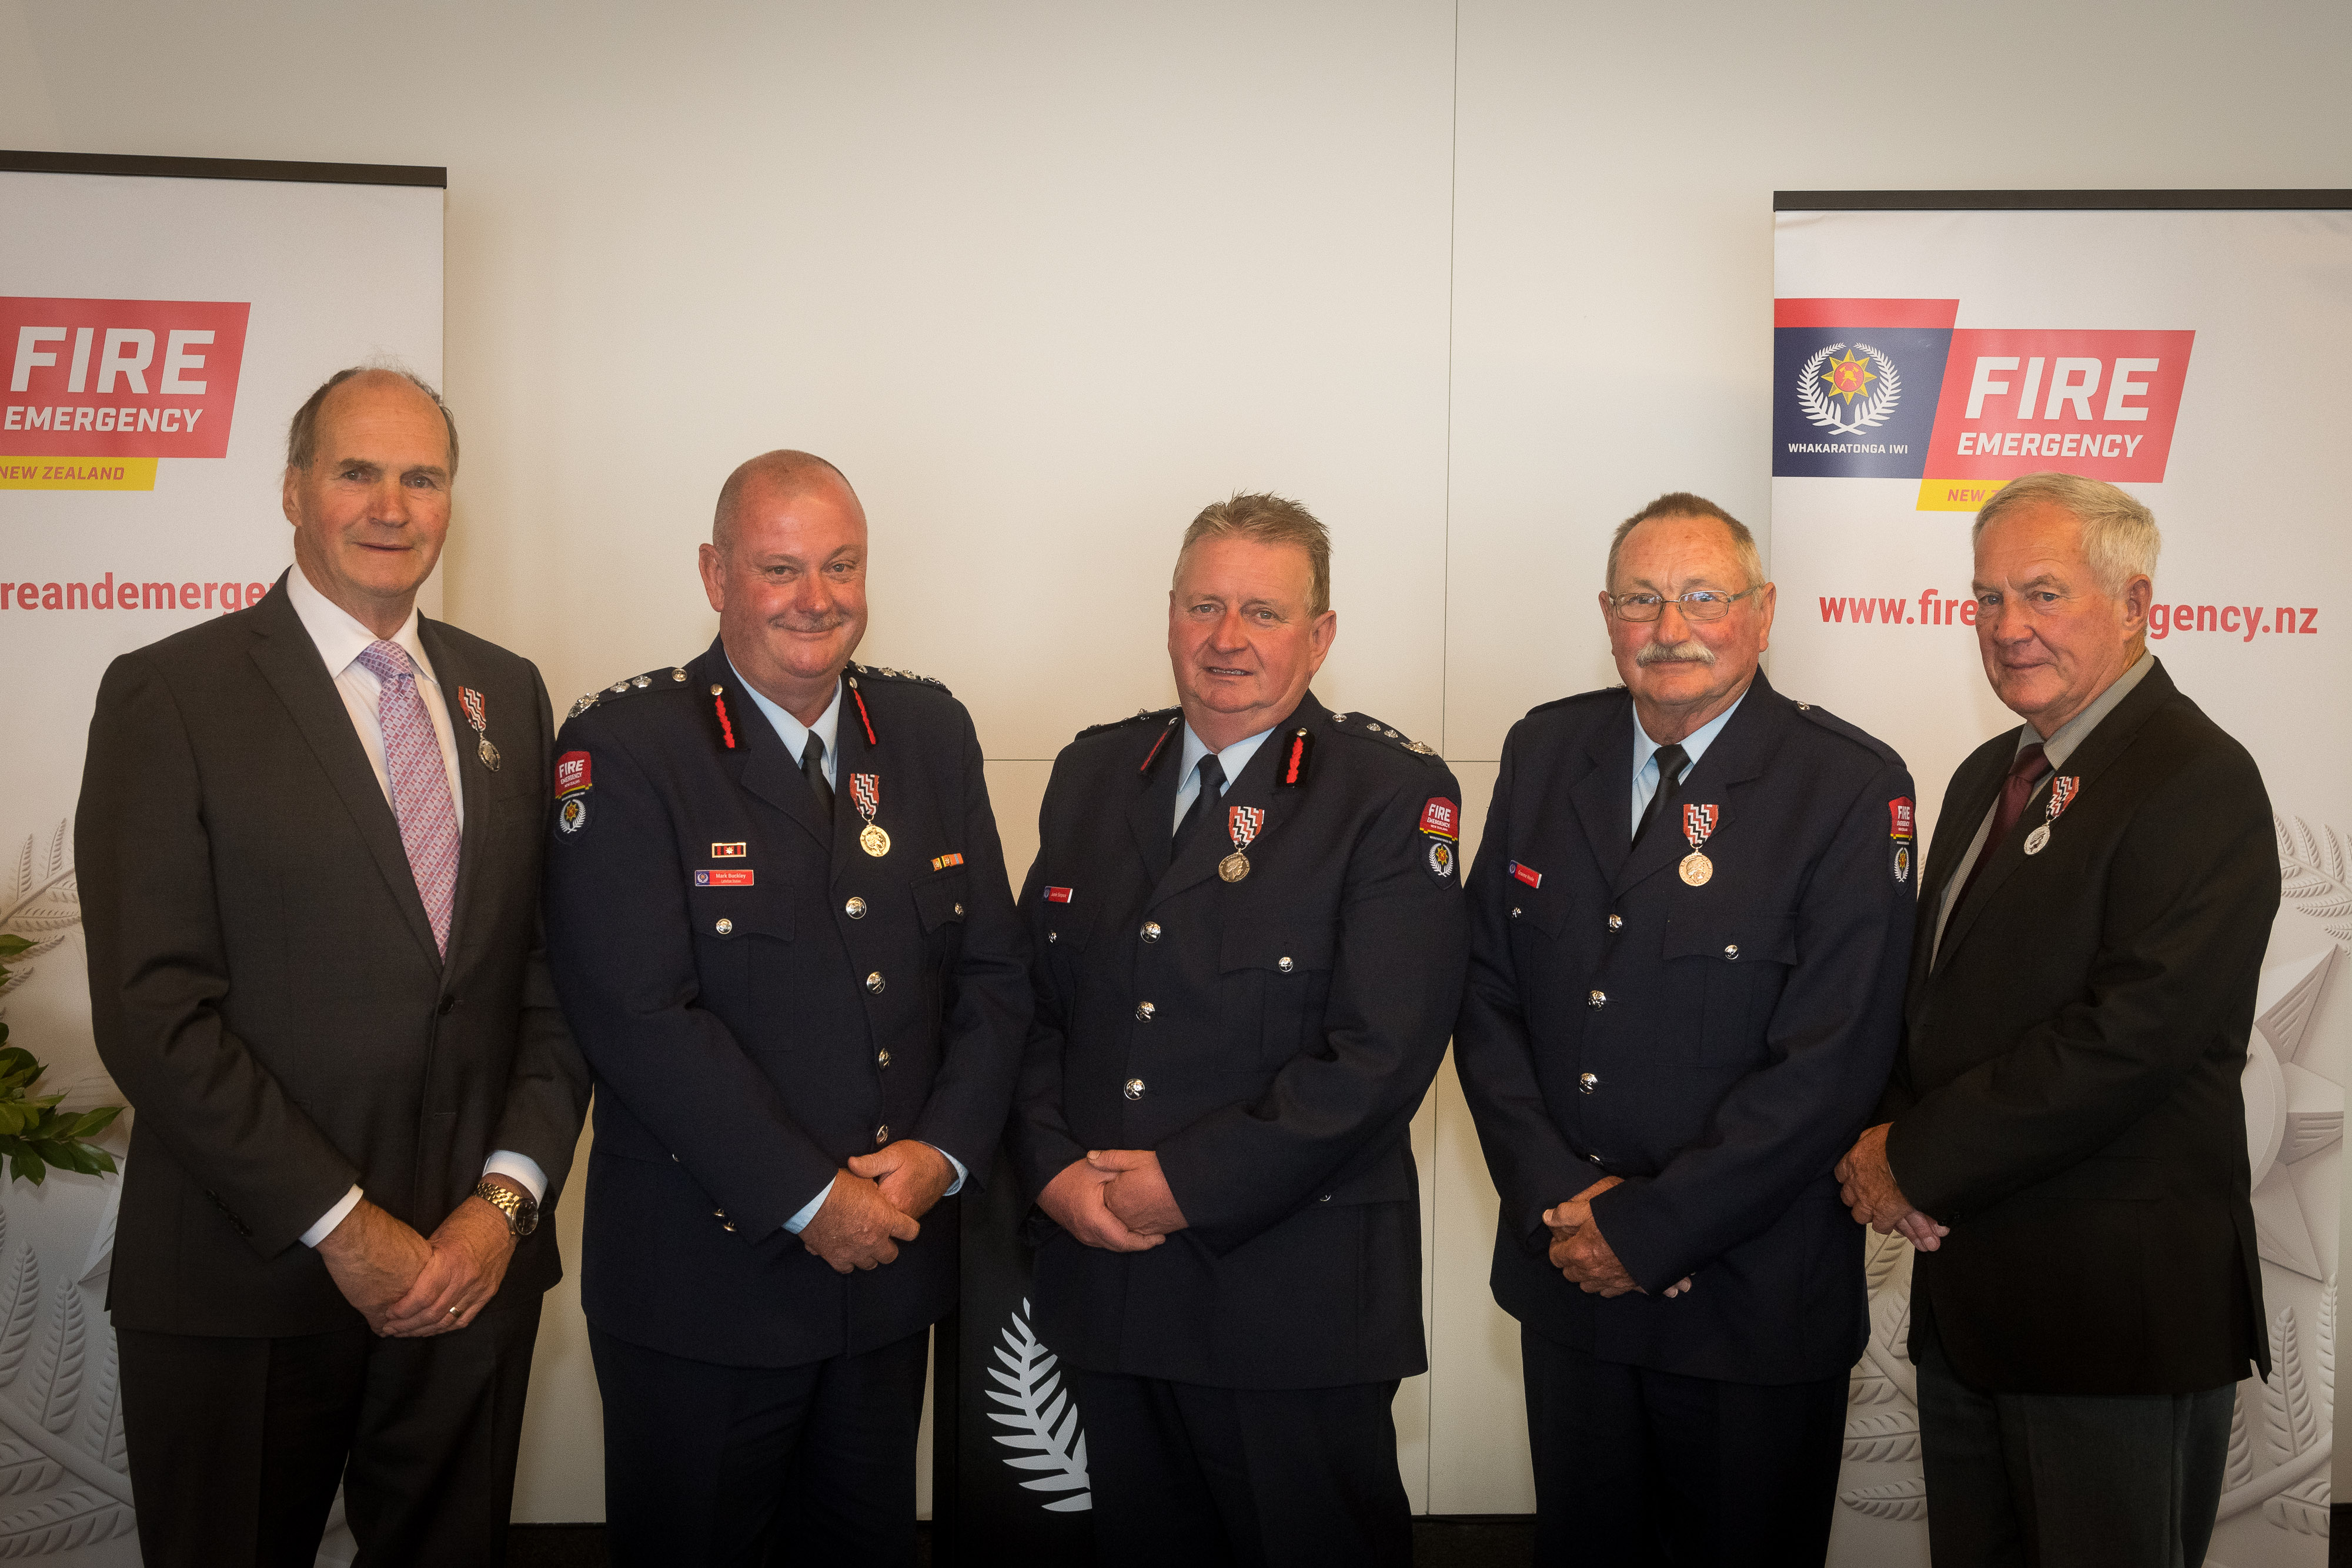 Fire and Emergency honours' recipients congratulated icon